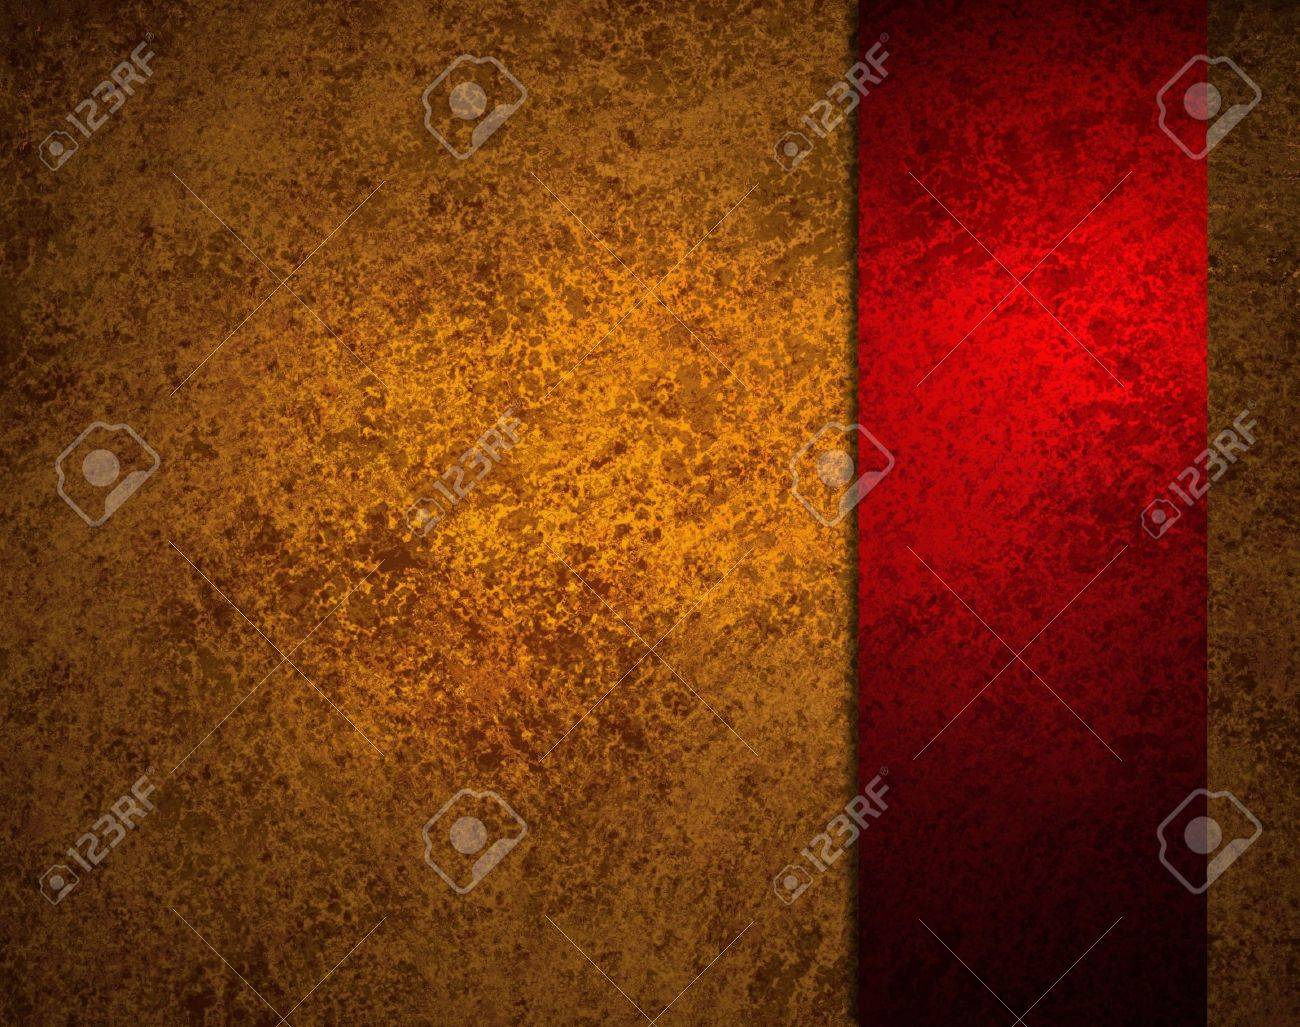 abstract red background with gold ribbon stripe or side bar on border frame, has vintage grunge background texture design with lighting, elegant Christmas background, red luxurious paper or wallpaper Stock Photo - 14674429